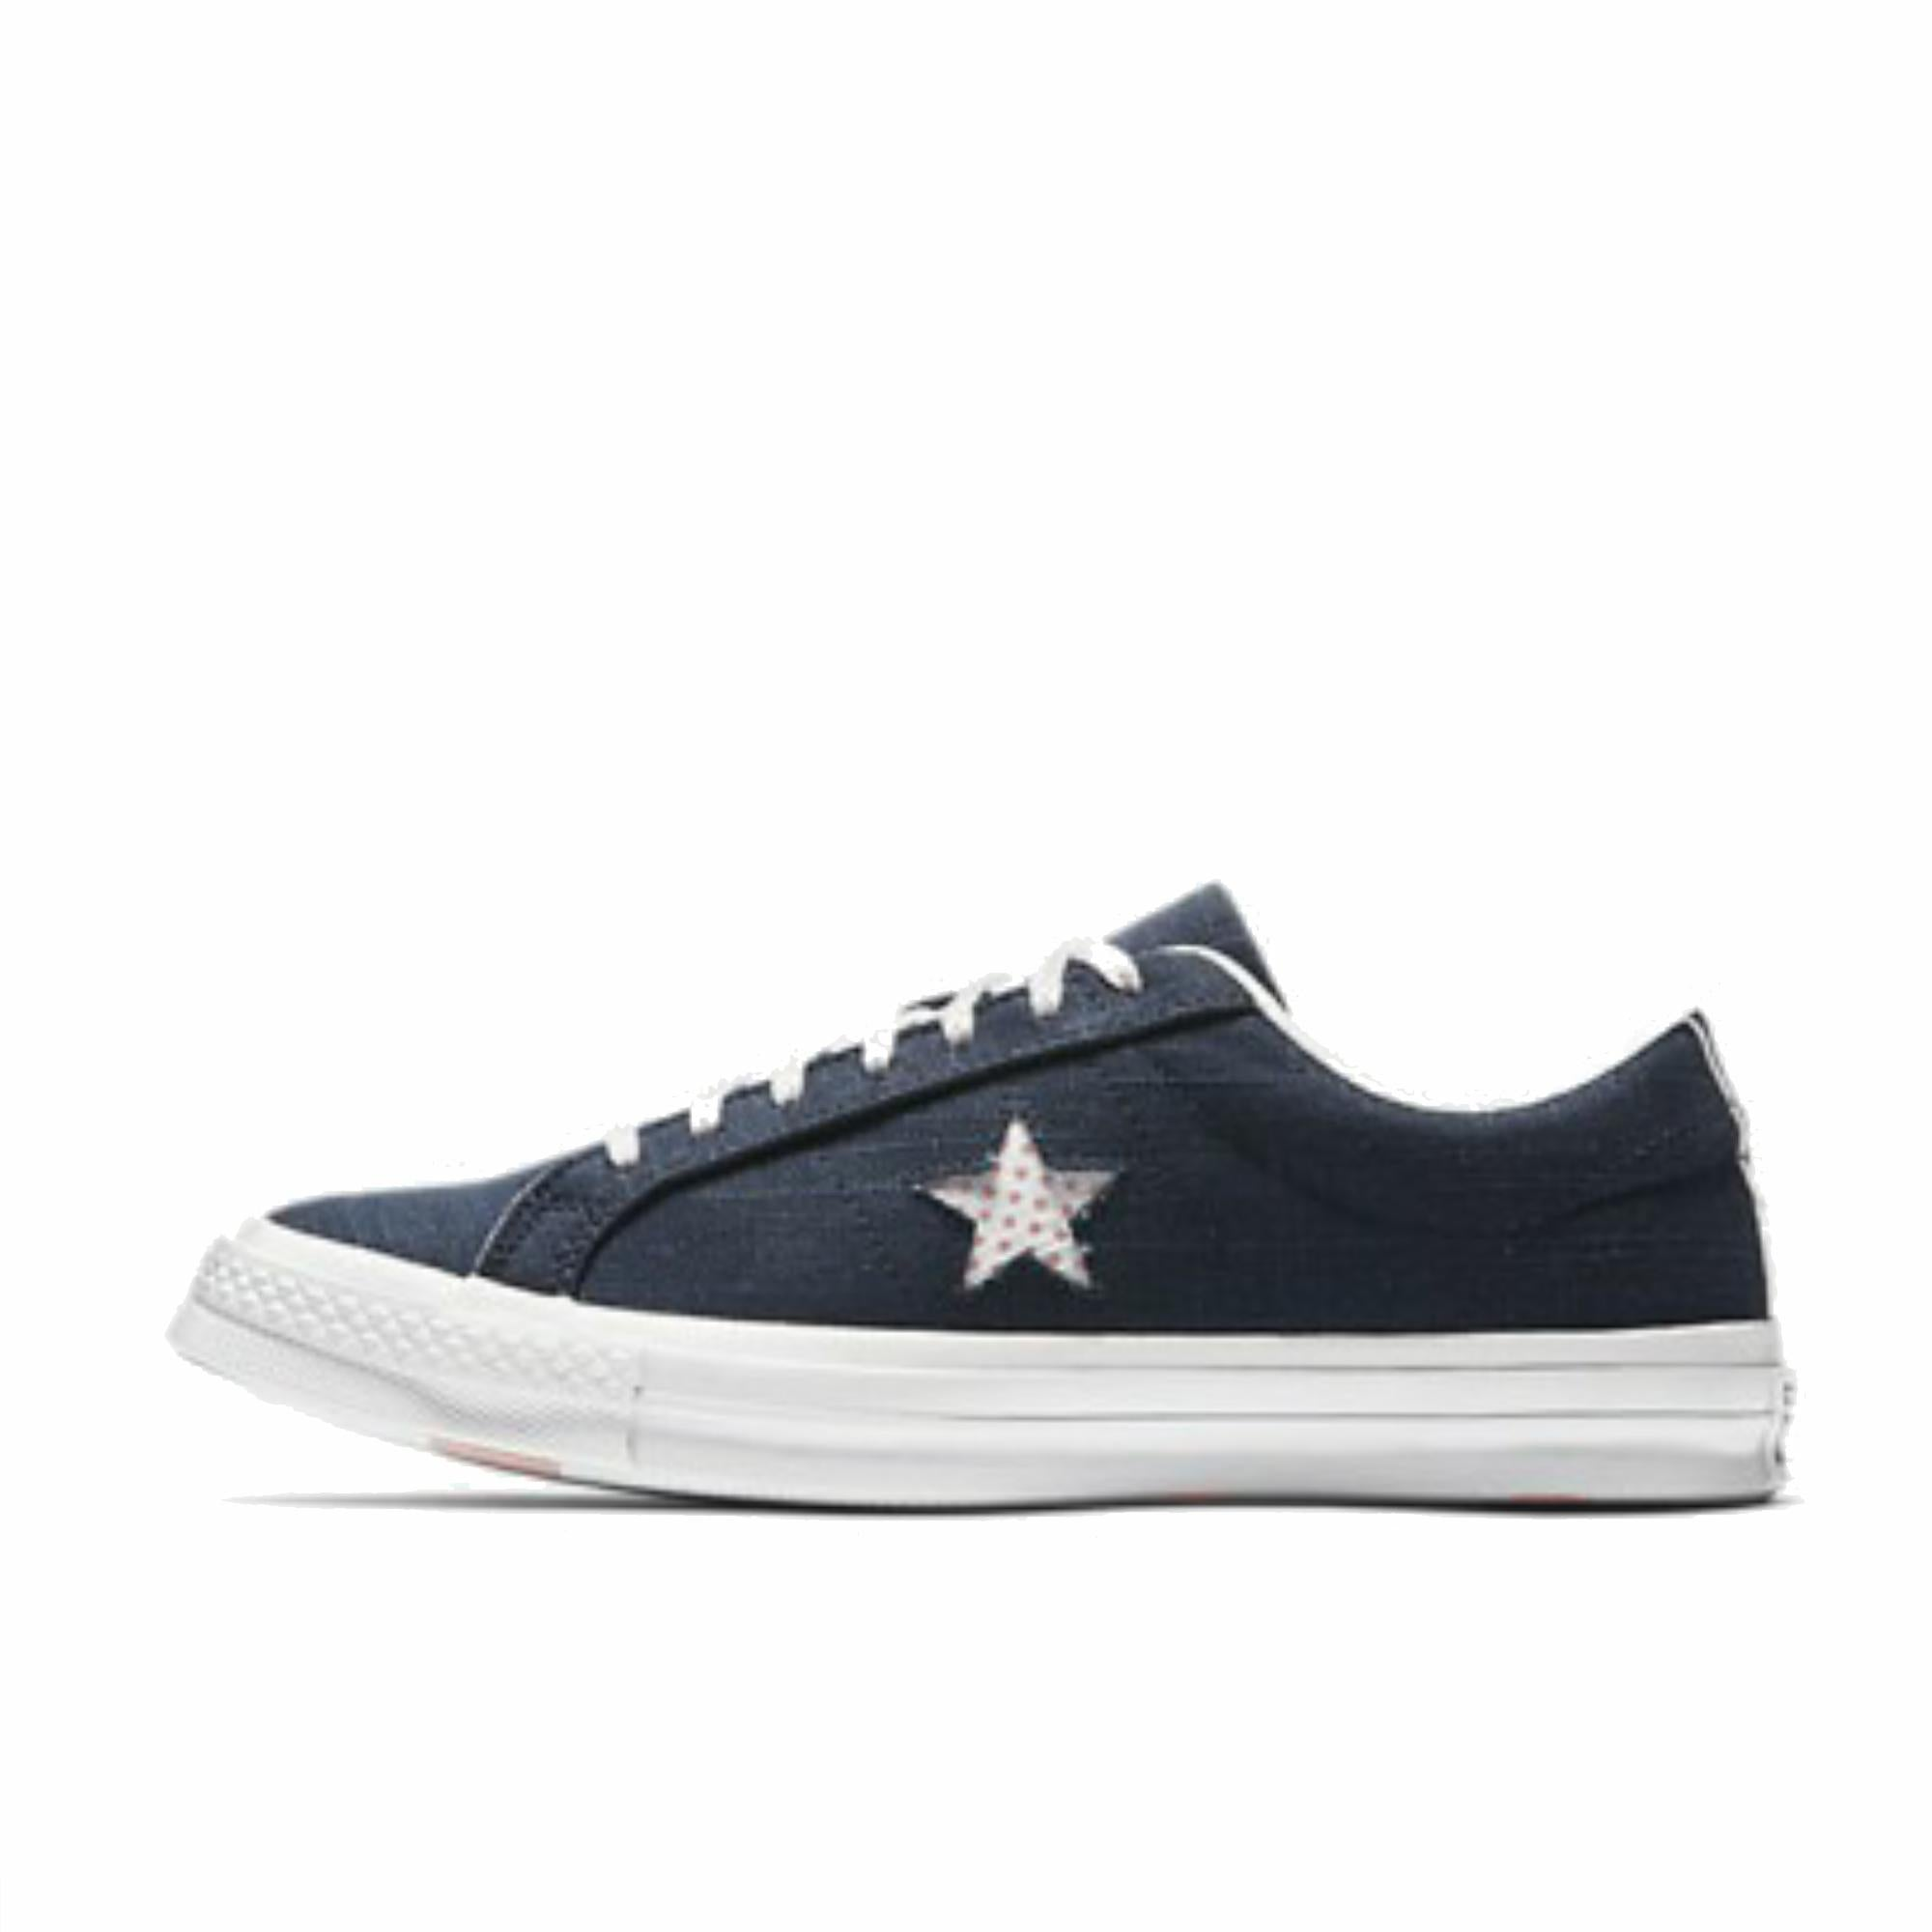 ONE STAR OX NAVY/PALE CORAL/WHITE 160621C